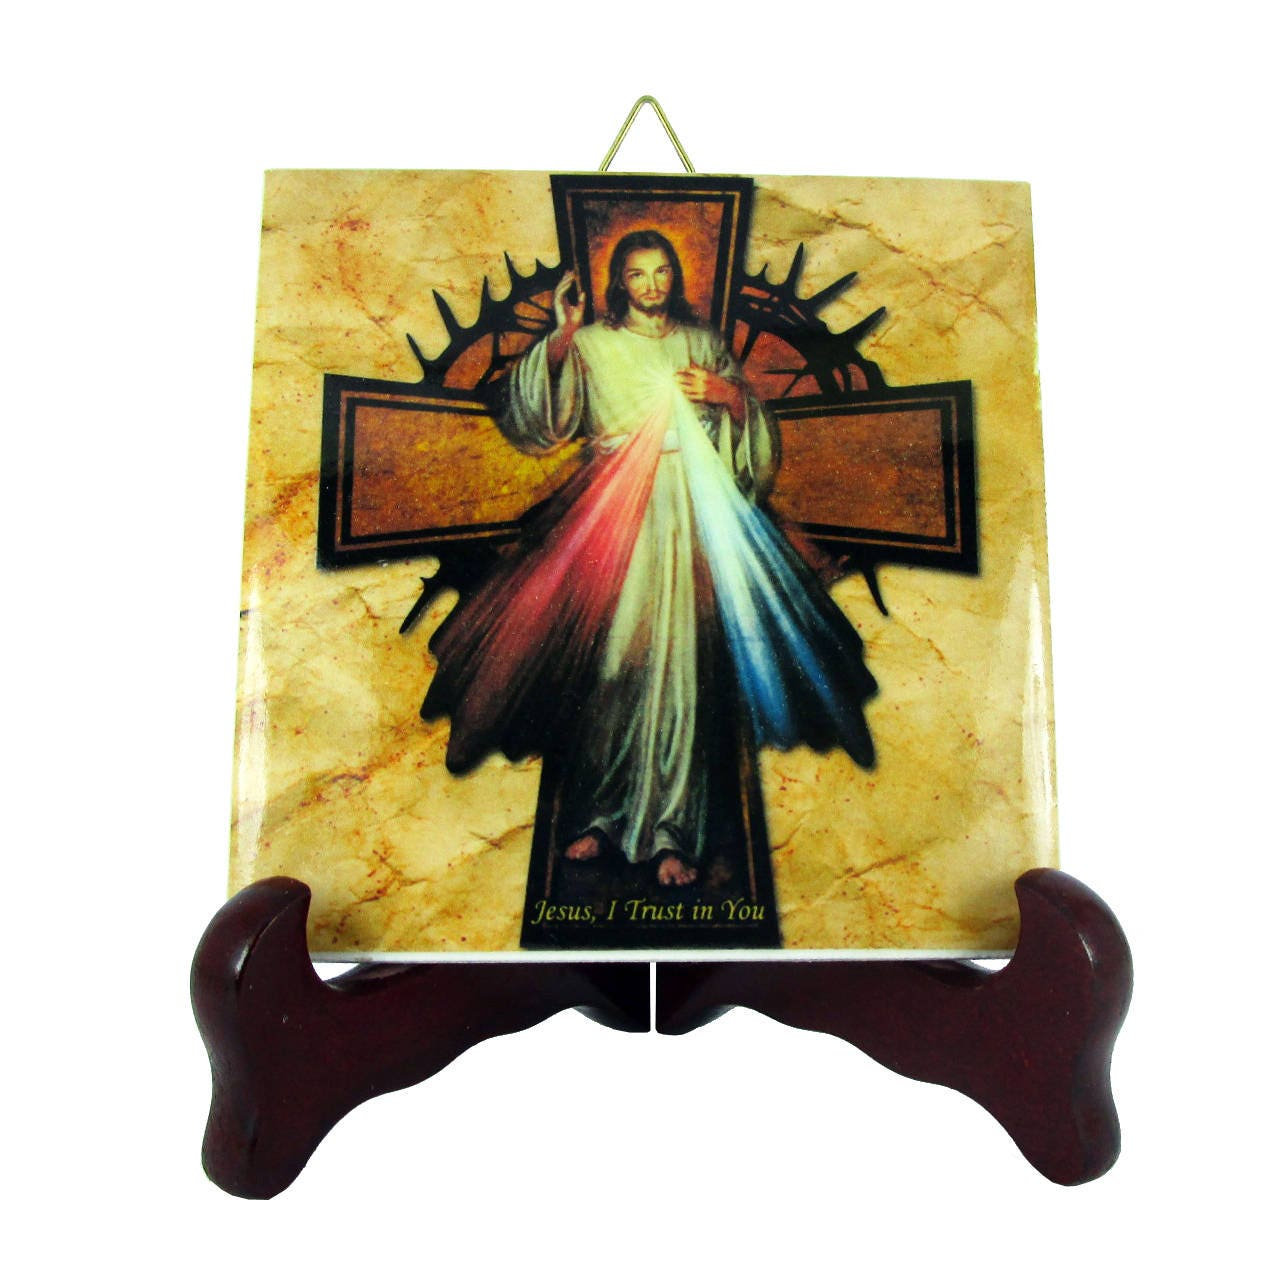 Sugar skull calavera mexicana wall hanging ceramic tile day of catholic gifts jesus christ of divine mercy with cross collectible ceramic tile religious gift idea holy dailygadgetfo Choice Image